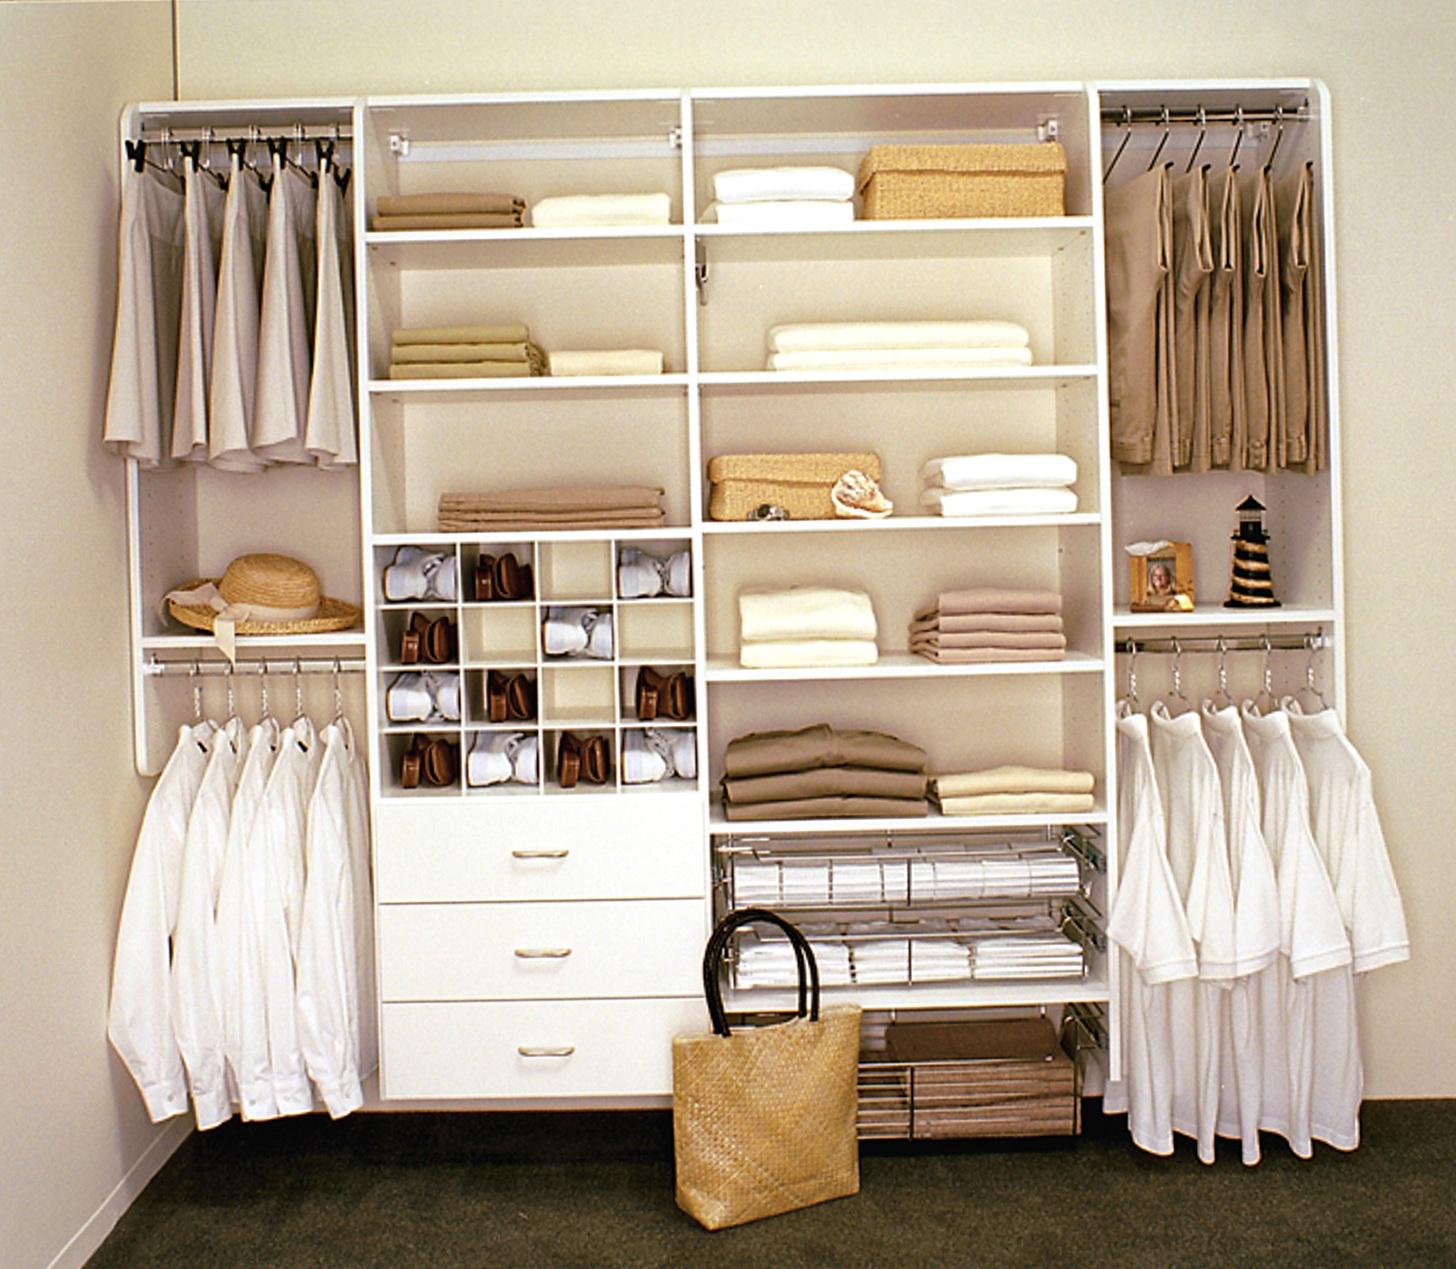 Ikea Wardrobe Tidy Walk In Closet Organizers Ikea Home Design Ideas